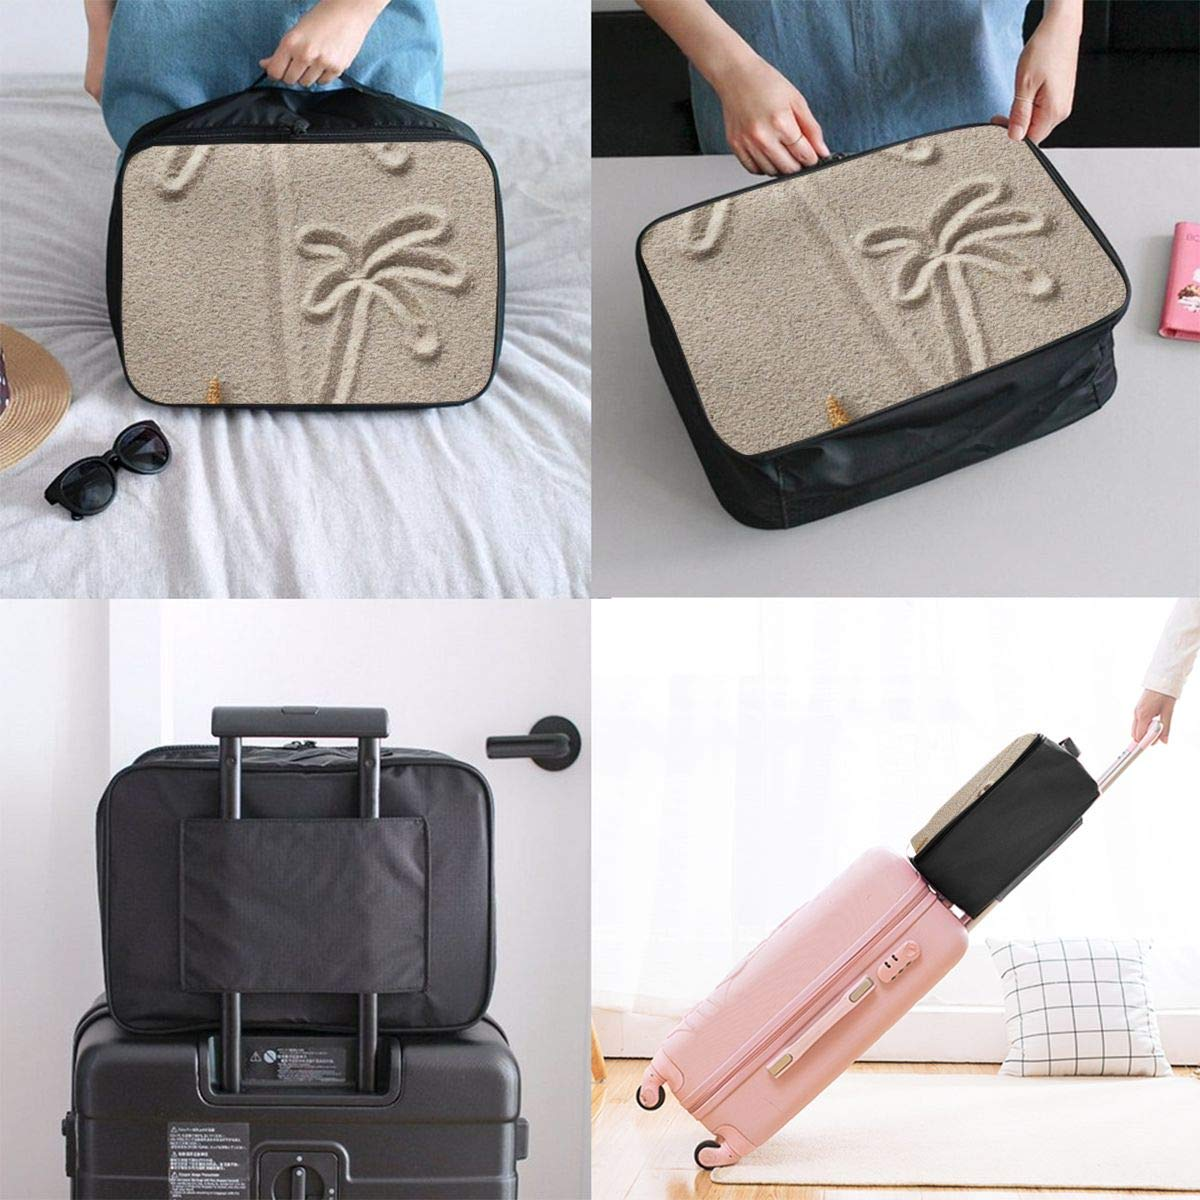 Paint The Beach On Beach Travel Lightweight Waterproof Folding Storage Portable Luggage Duffle Tote Bag Large Capacity In Trolley Handle Bags 6x11x15 Inch